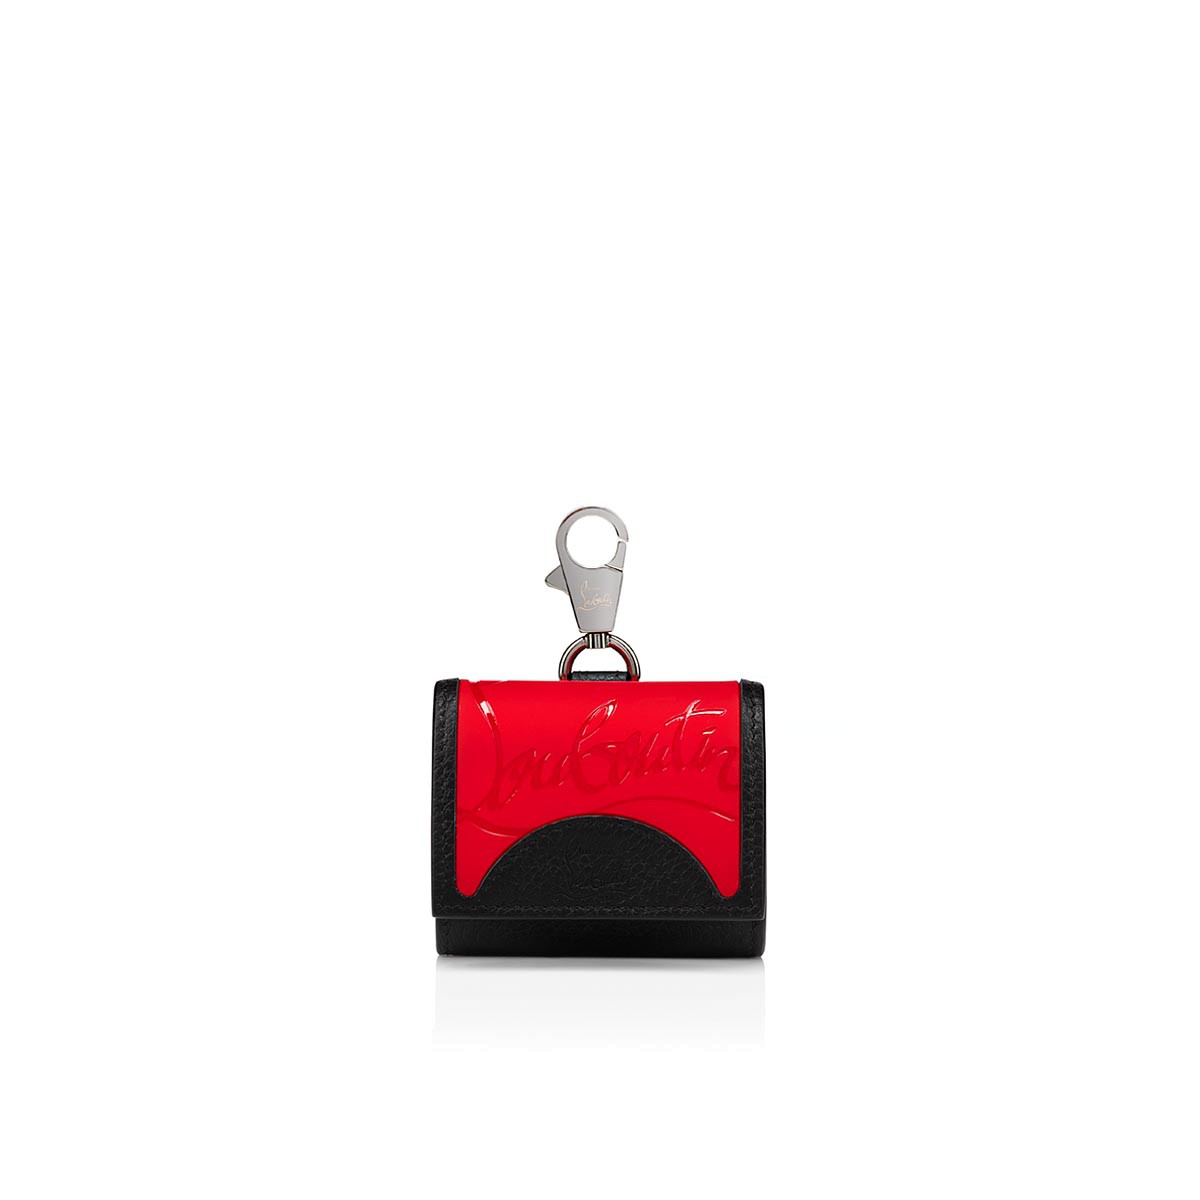 Small Leather Goods - M Grilou Airpods Case - Christian Louboutin